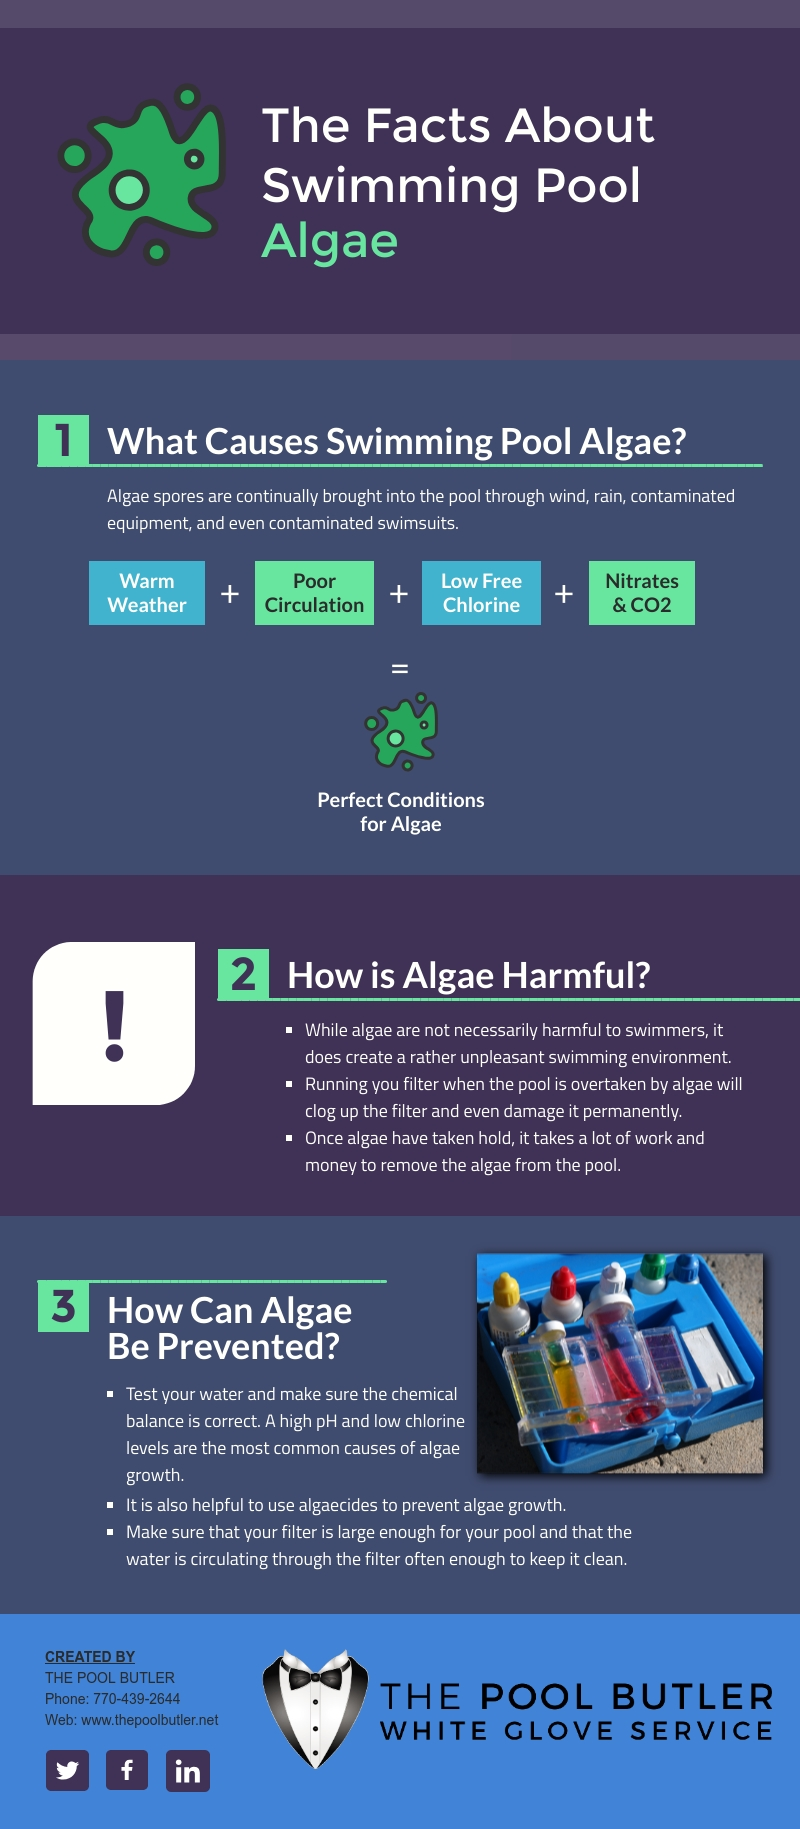 The Facts About Swimming Pool Algae [infographic]